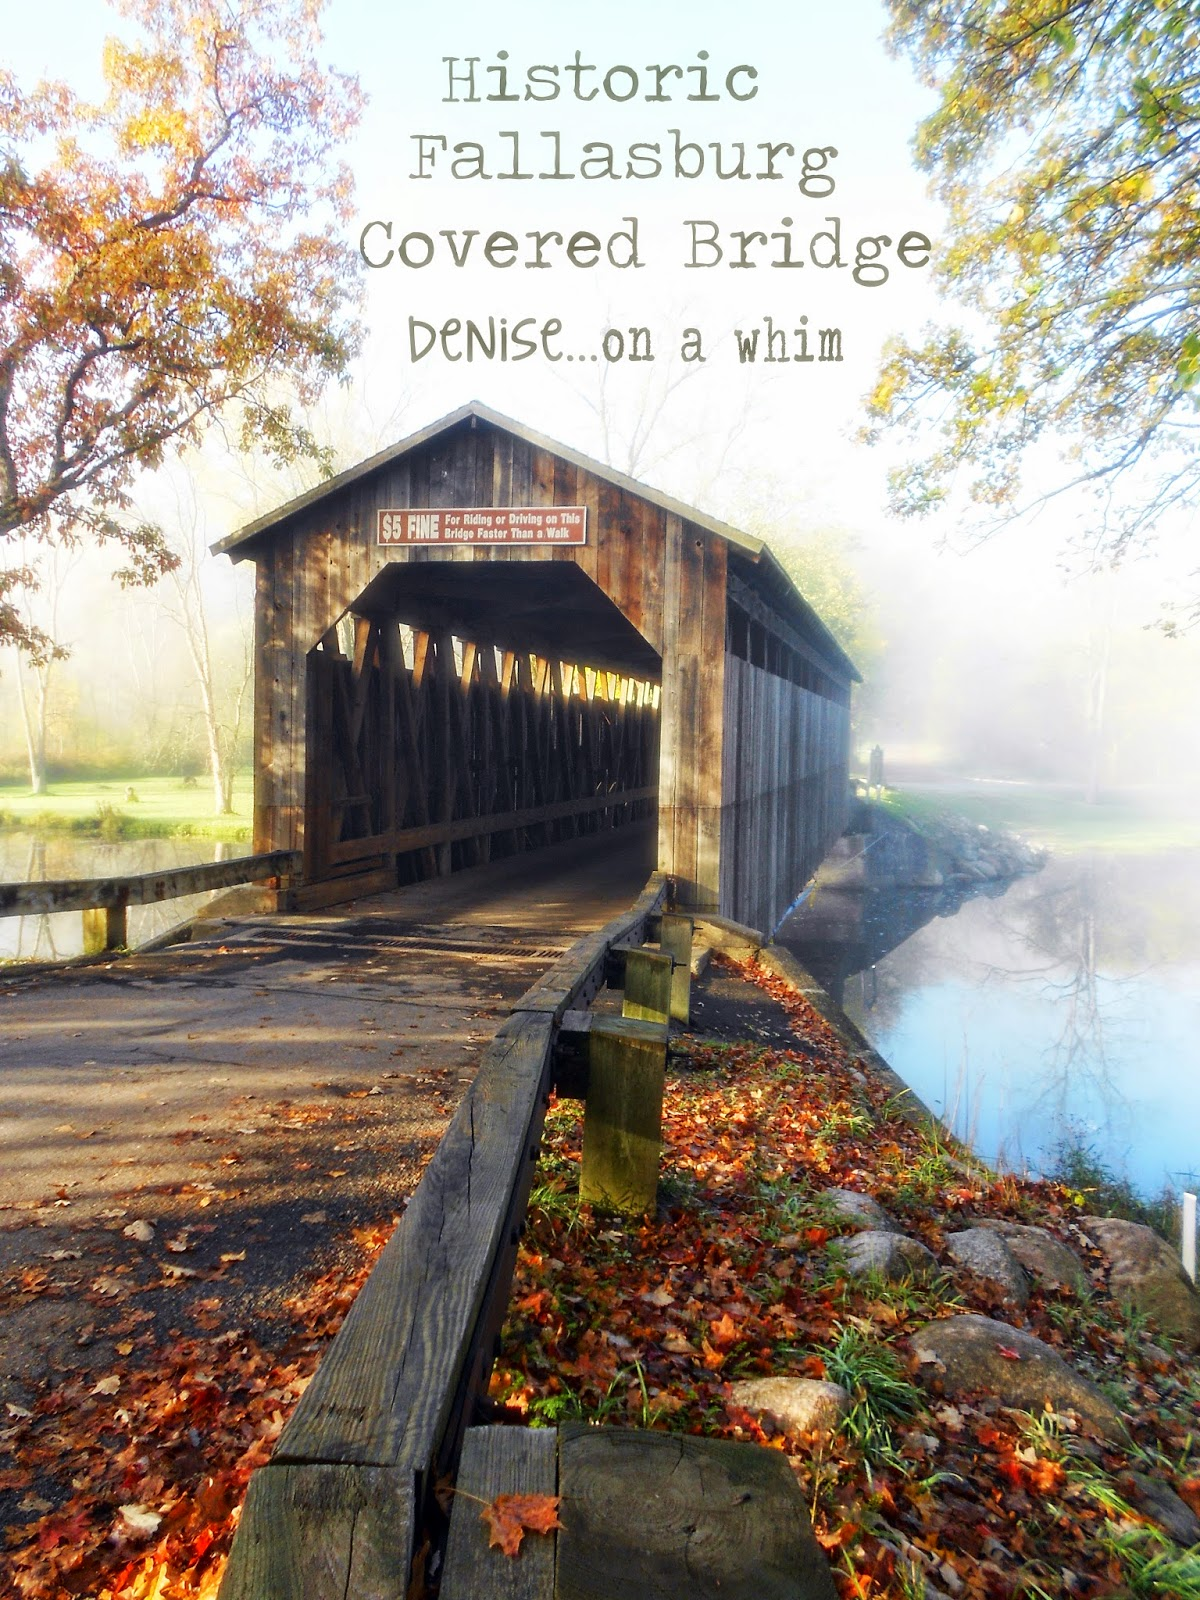 Fall Tour at the Covered Bridge from Denise on a Whim